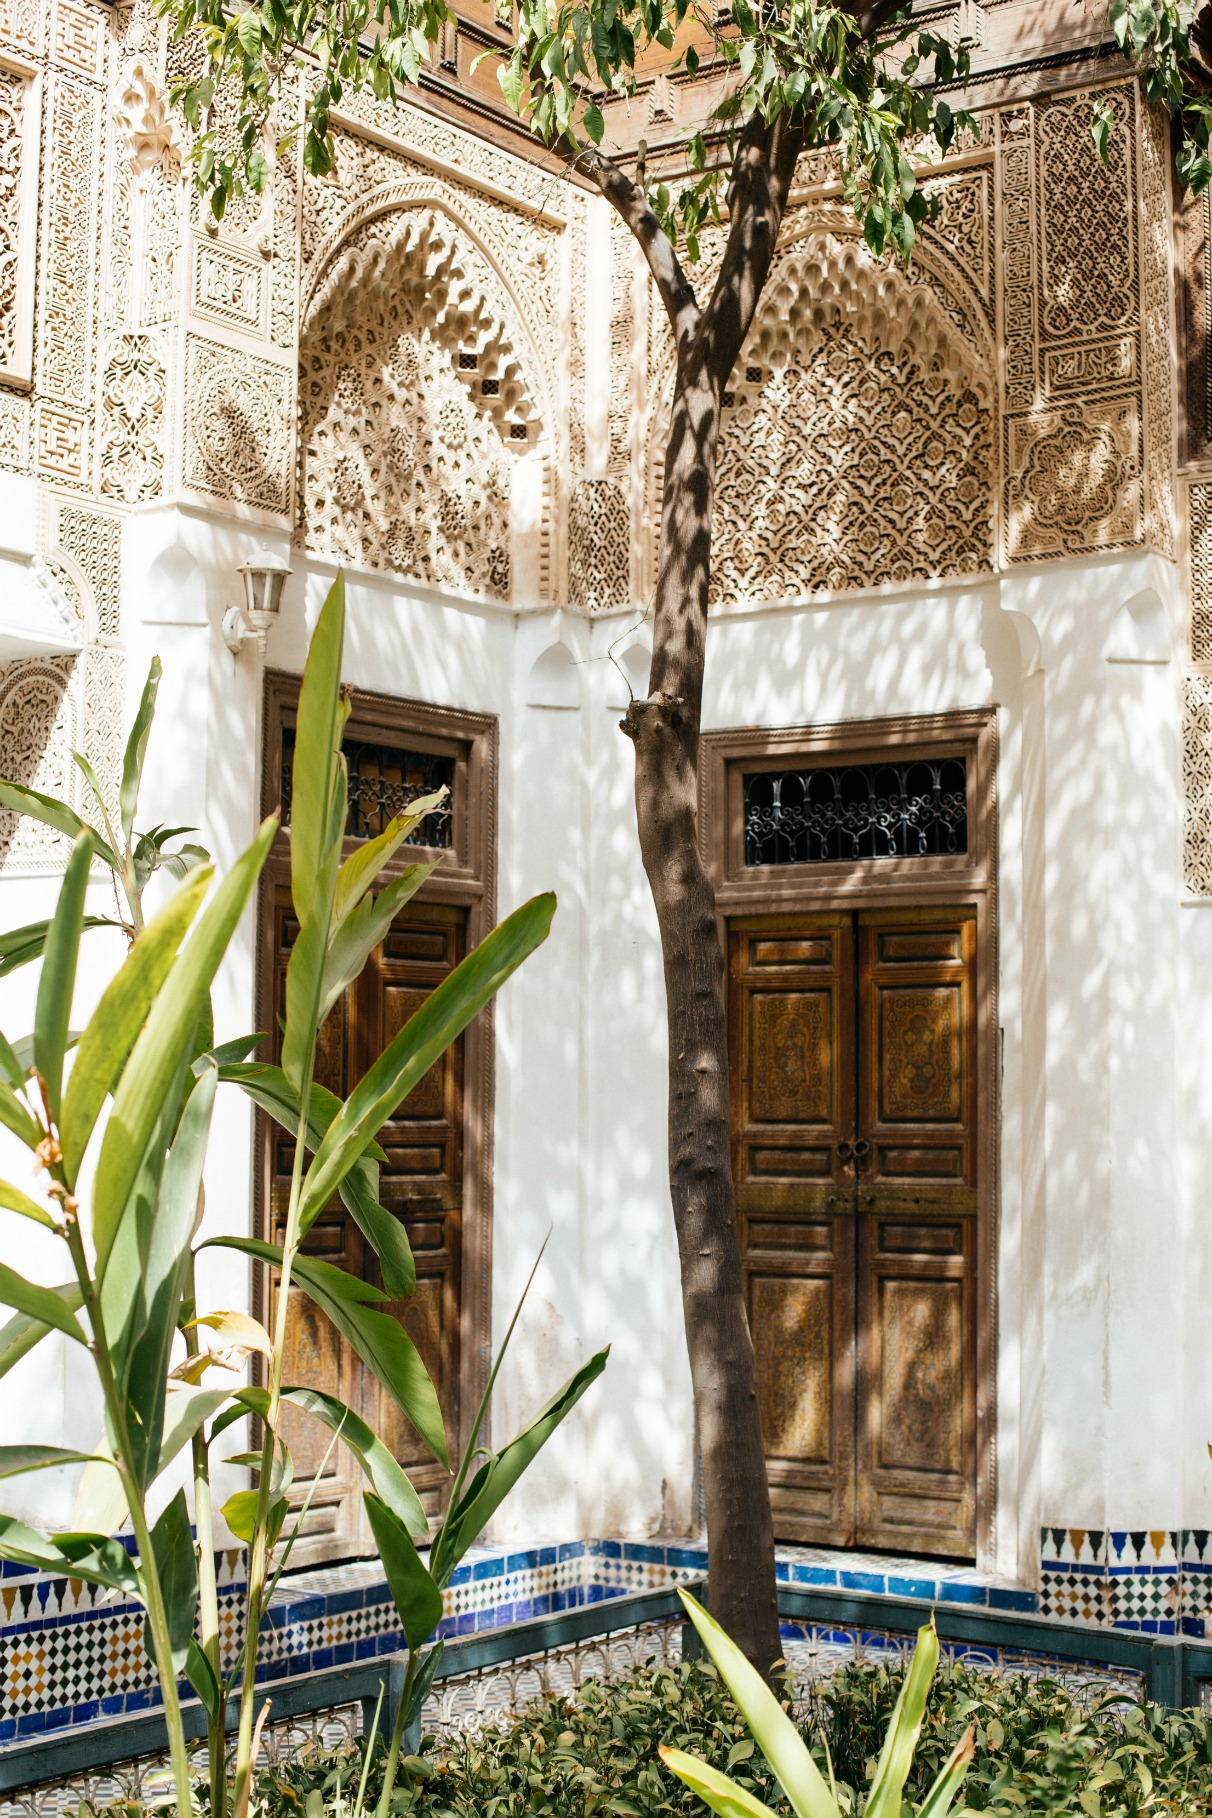 essential-tips-for-visiting-marrakech-morocco-disi-couture-17